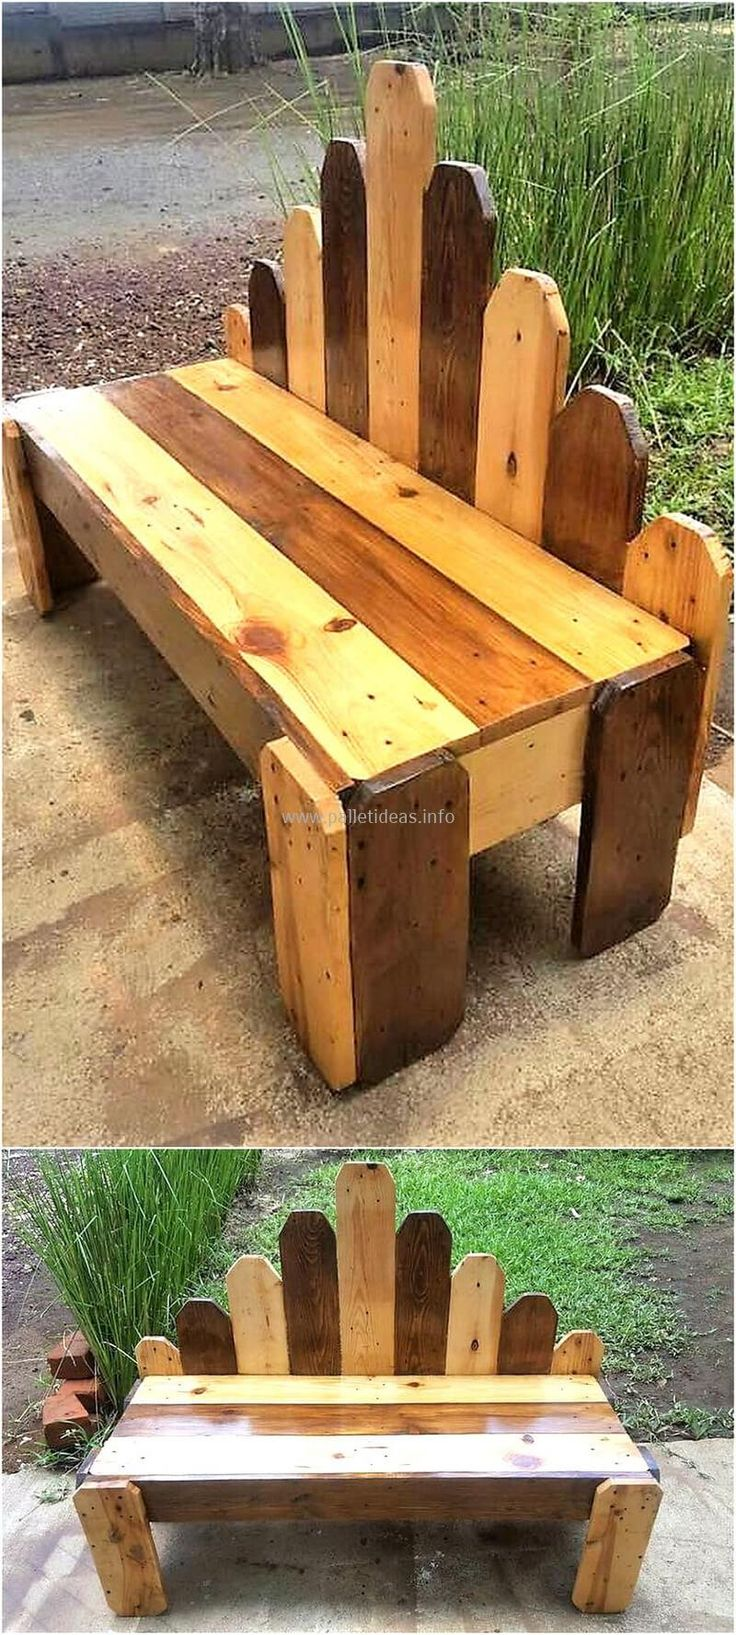 cute and neat wood pallet recycling ideas - Garden Ideas Using Pallets